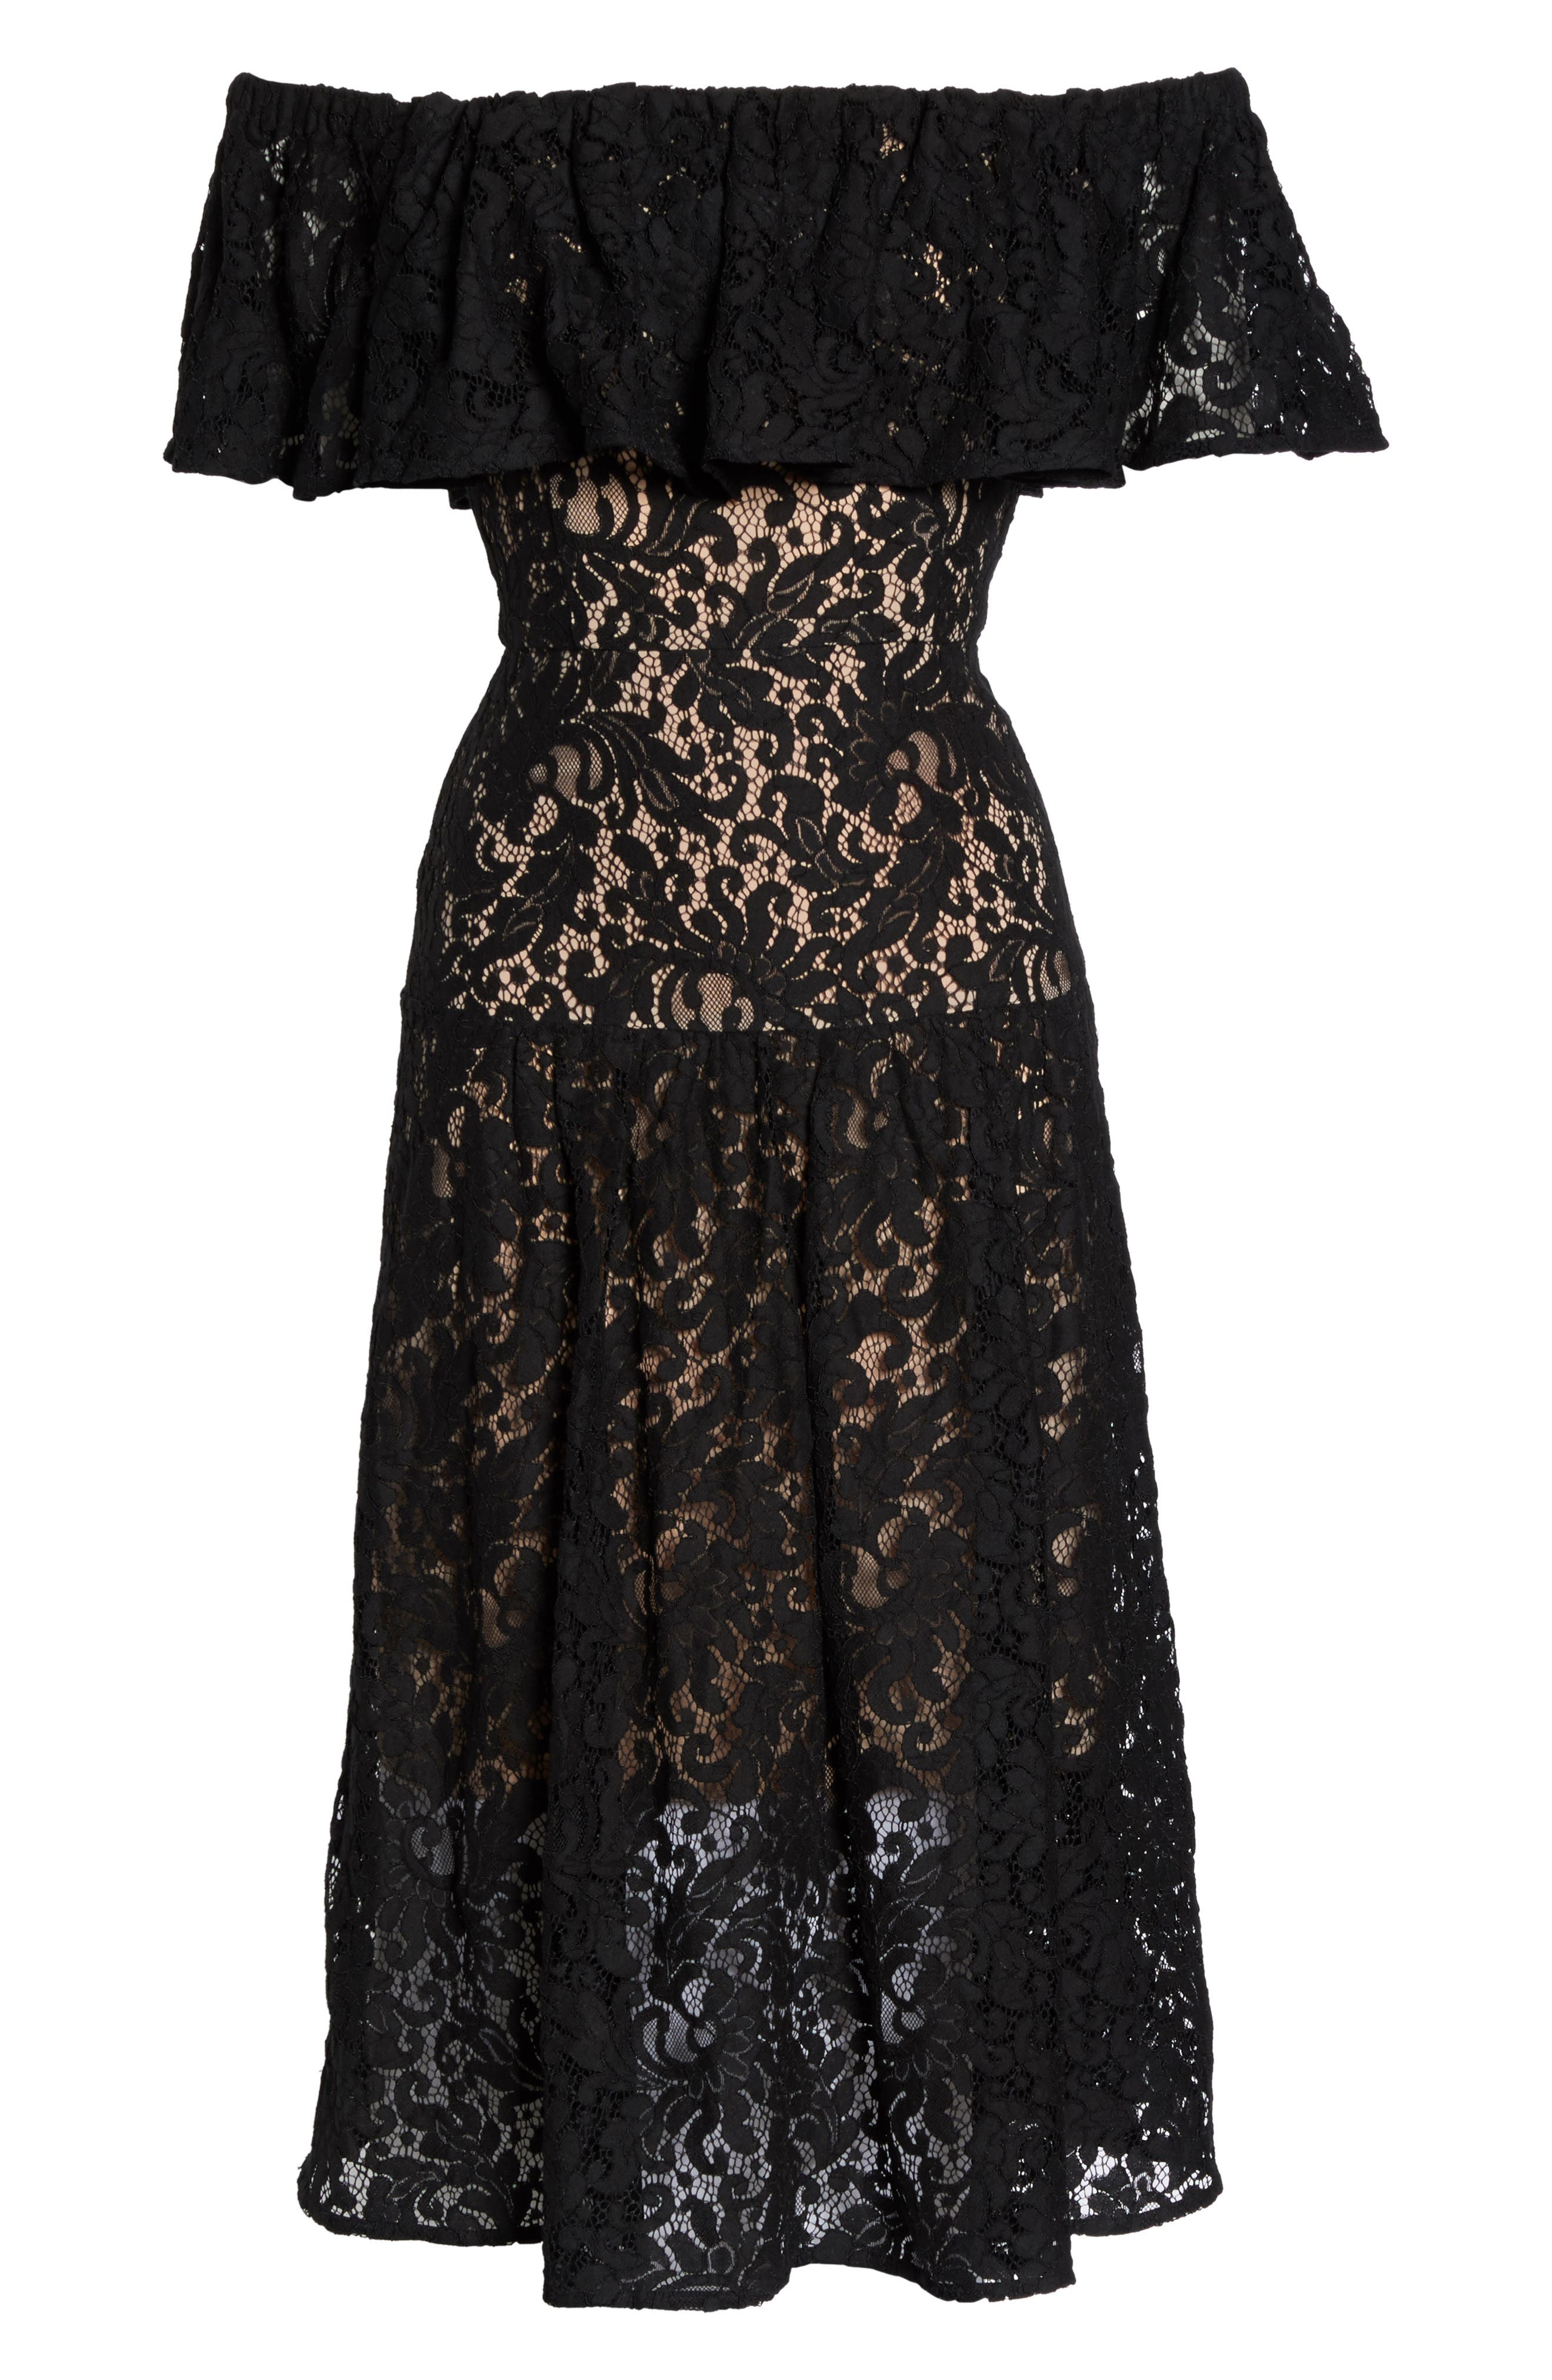 Sunday Silence Lace Off the Shoulder Dress,                             Alternate thumbnail 6, color,                             Black